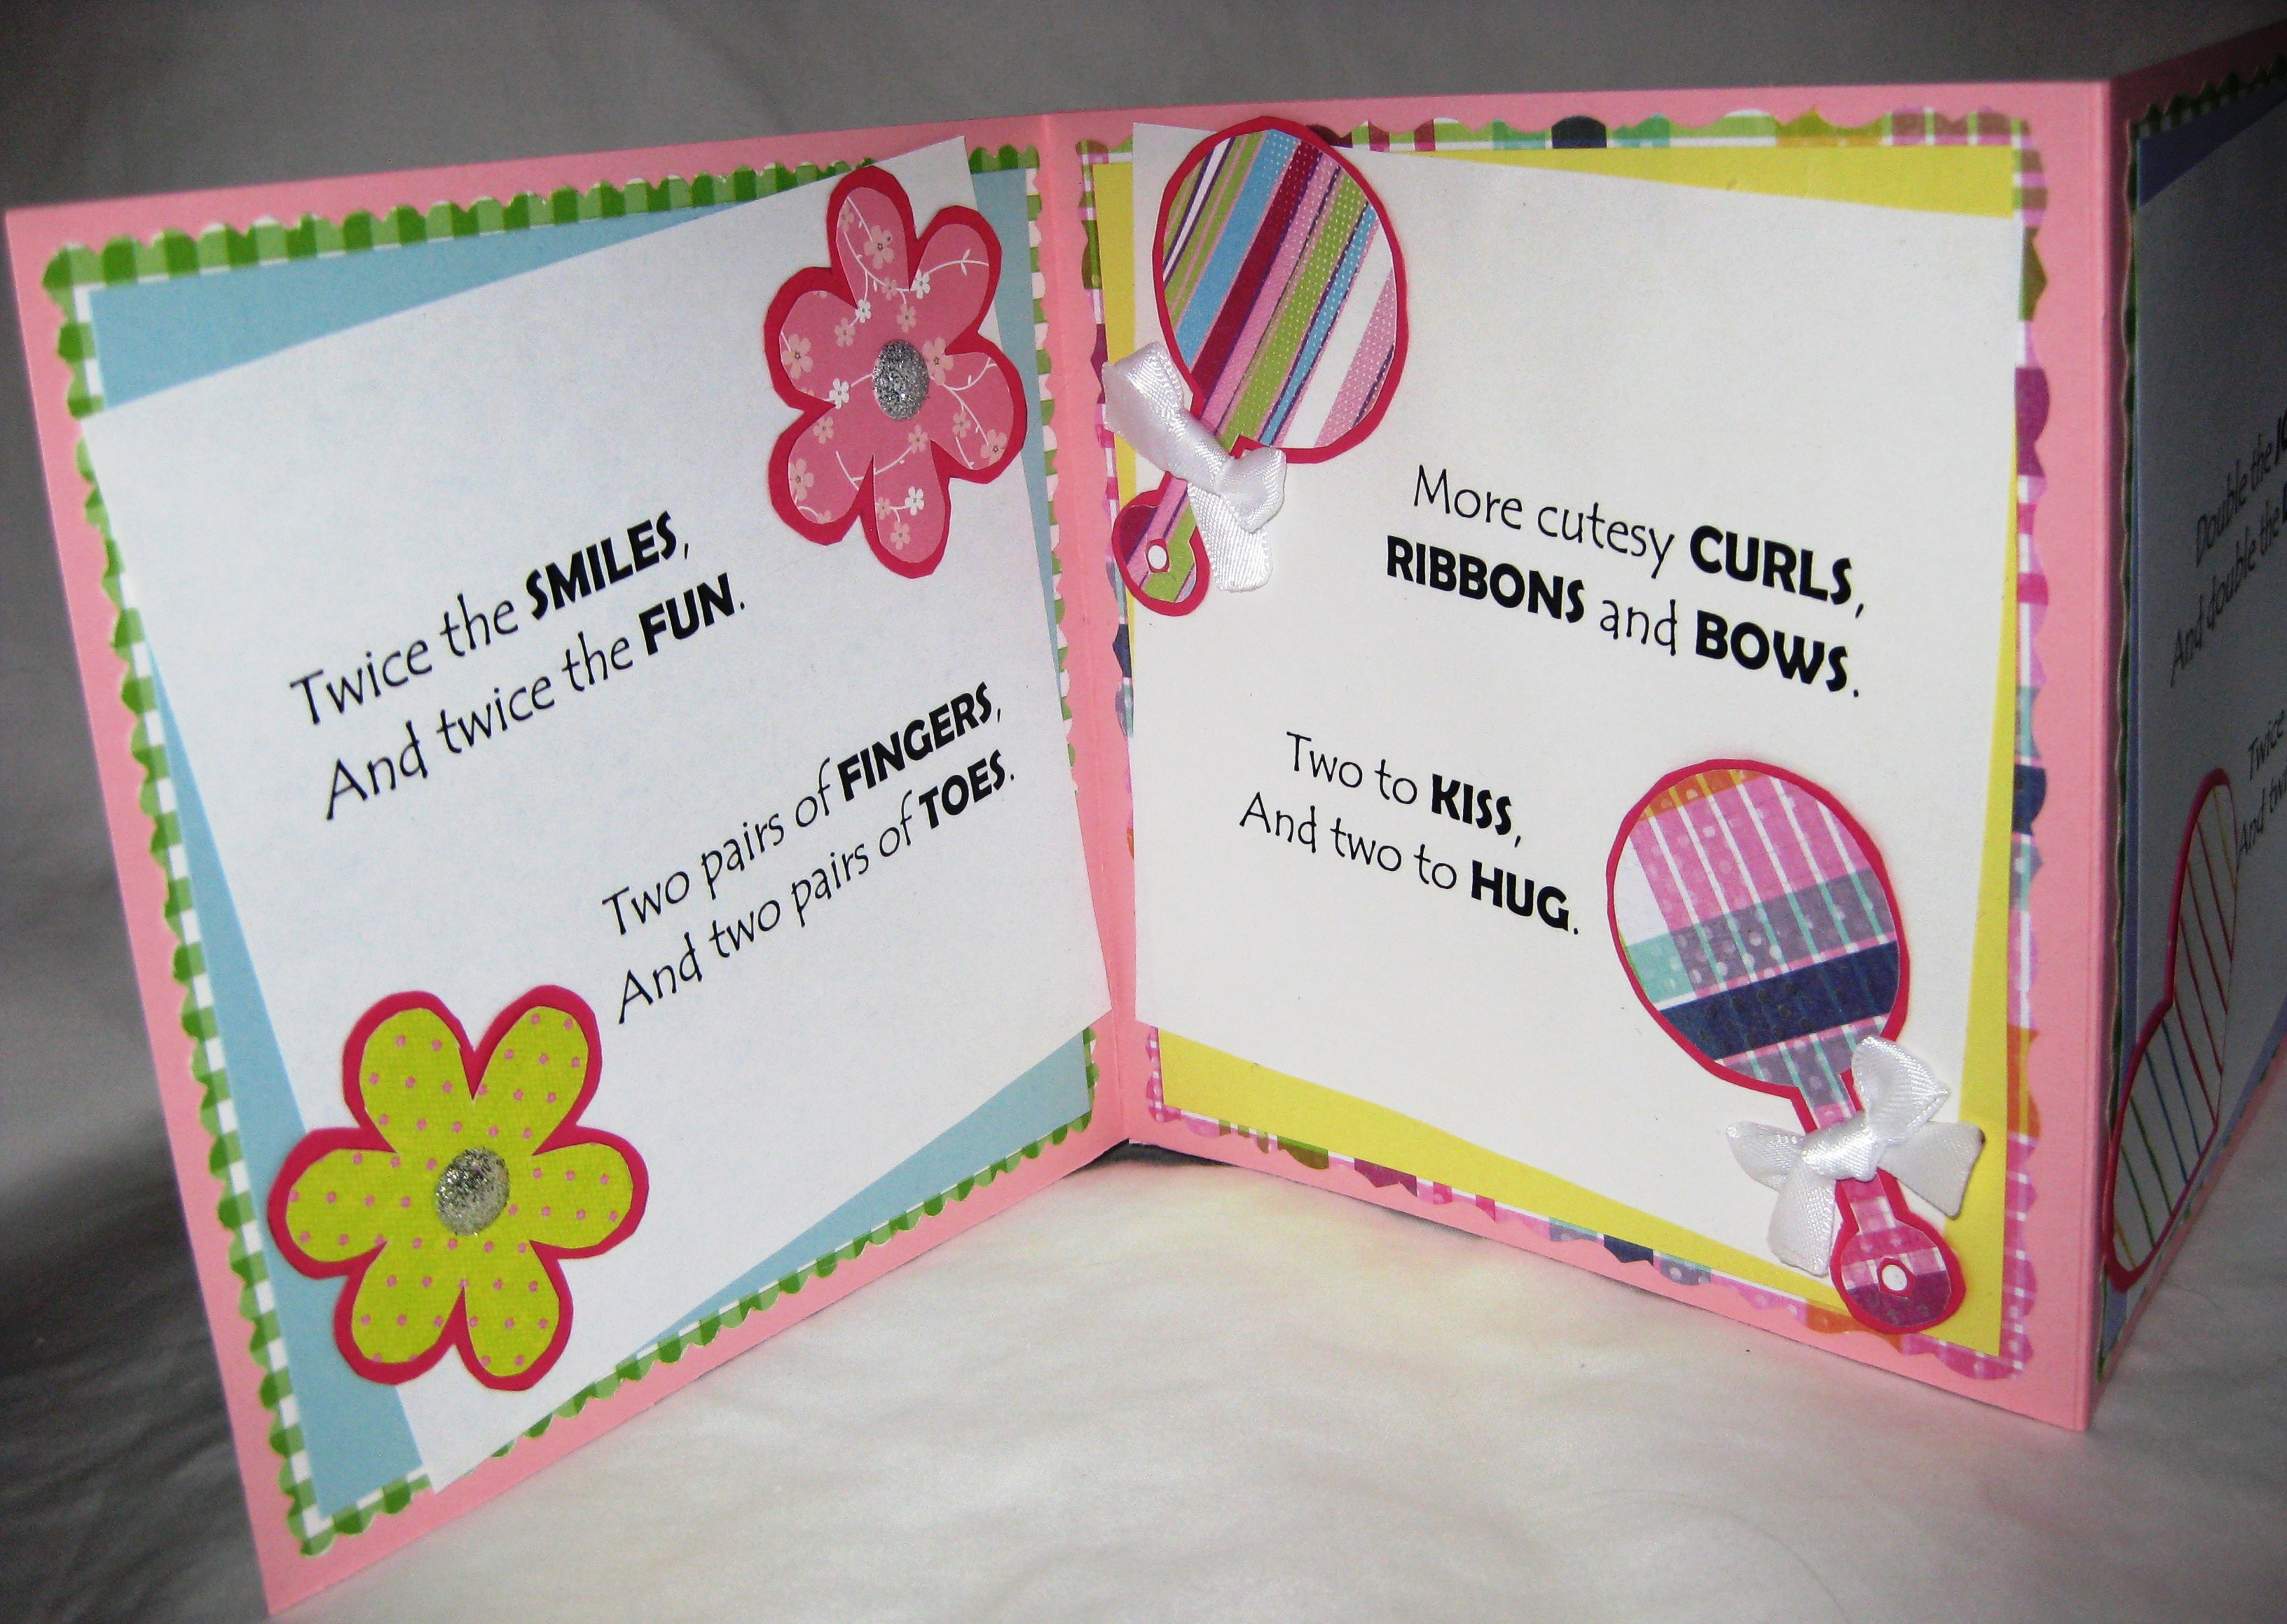 Handmade Birthday Invitation Cards Ideas Birthday Invitation Card Design Handmade